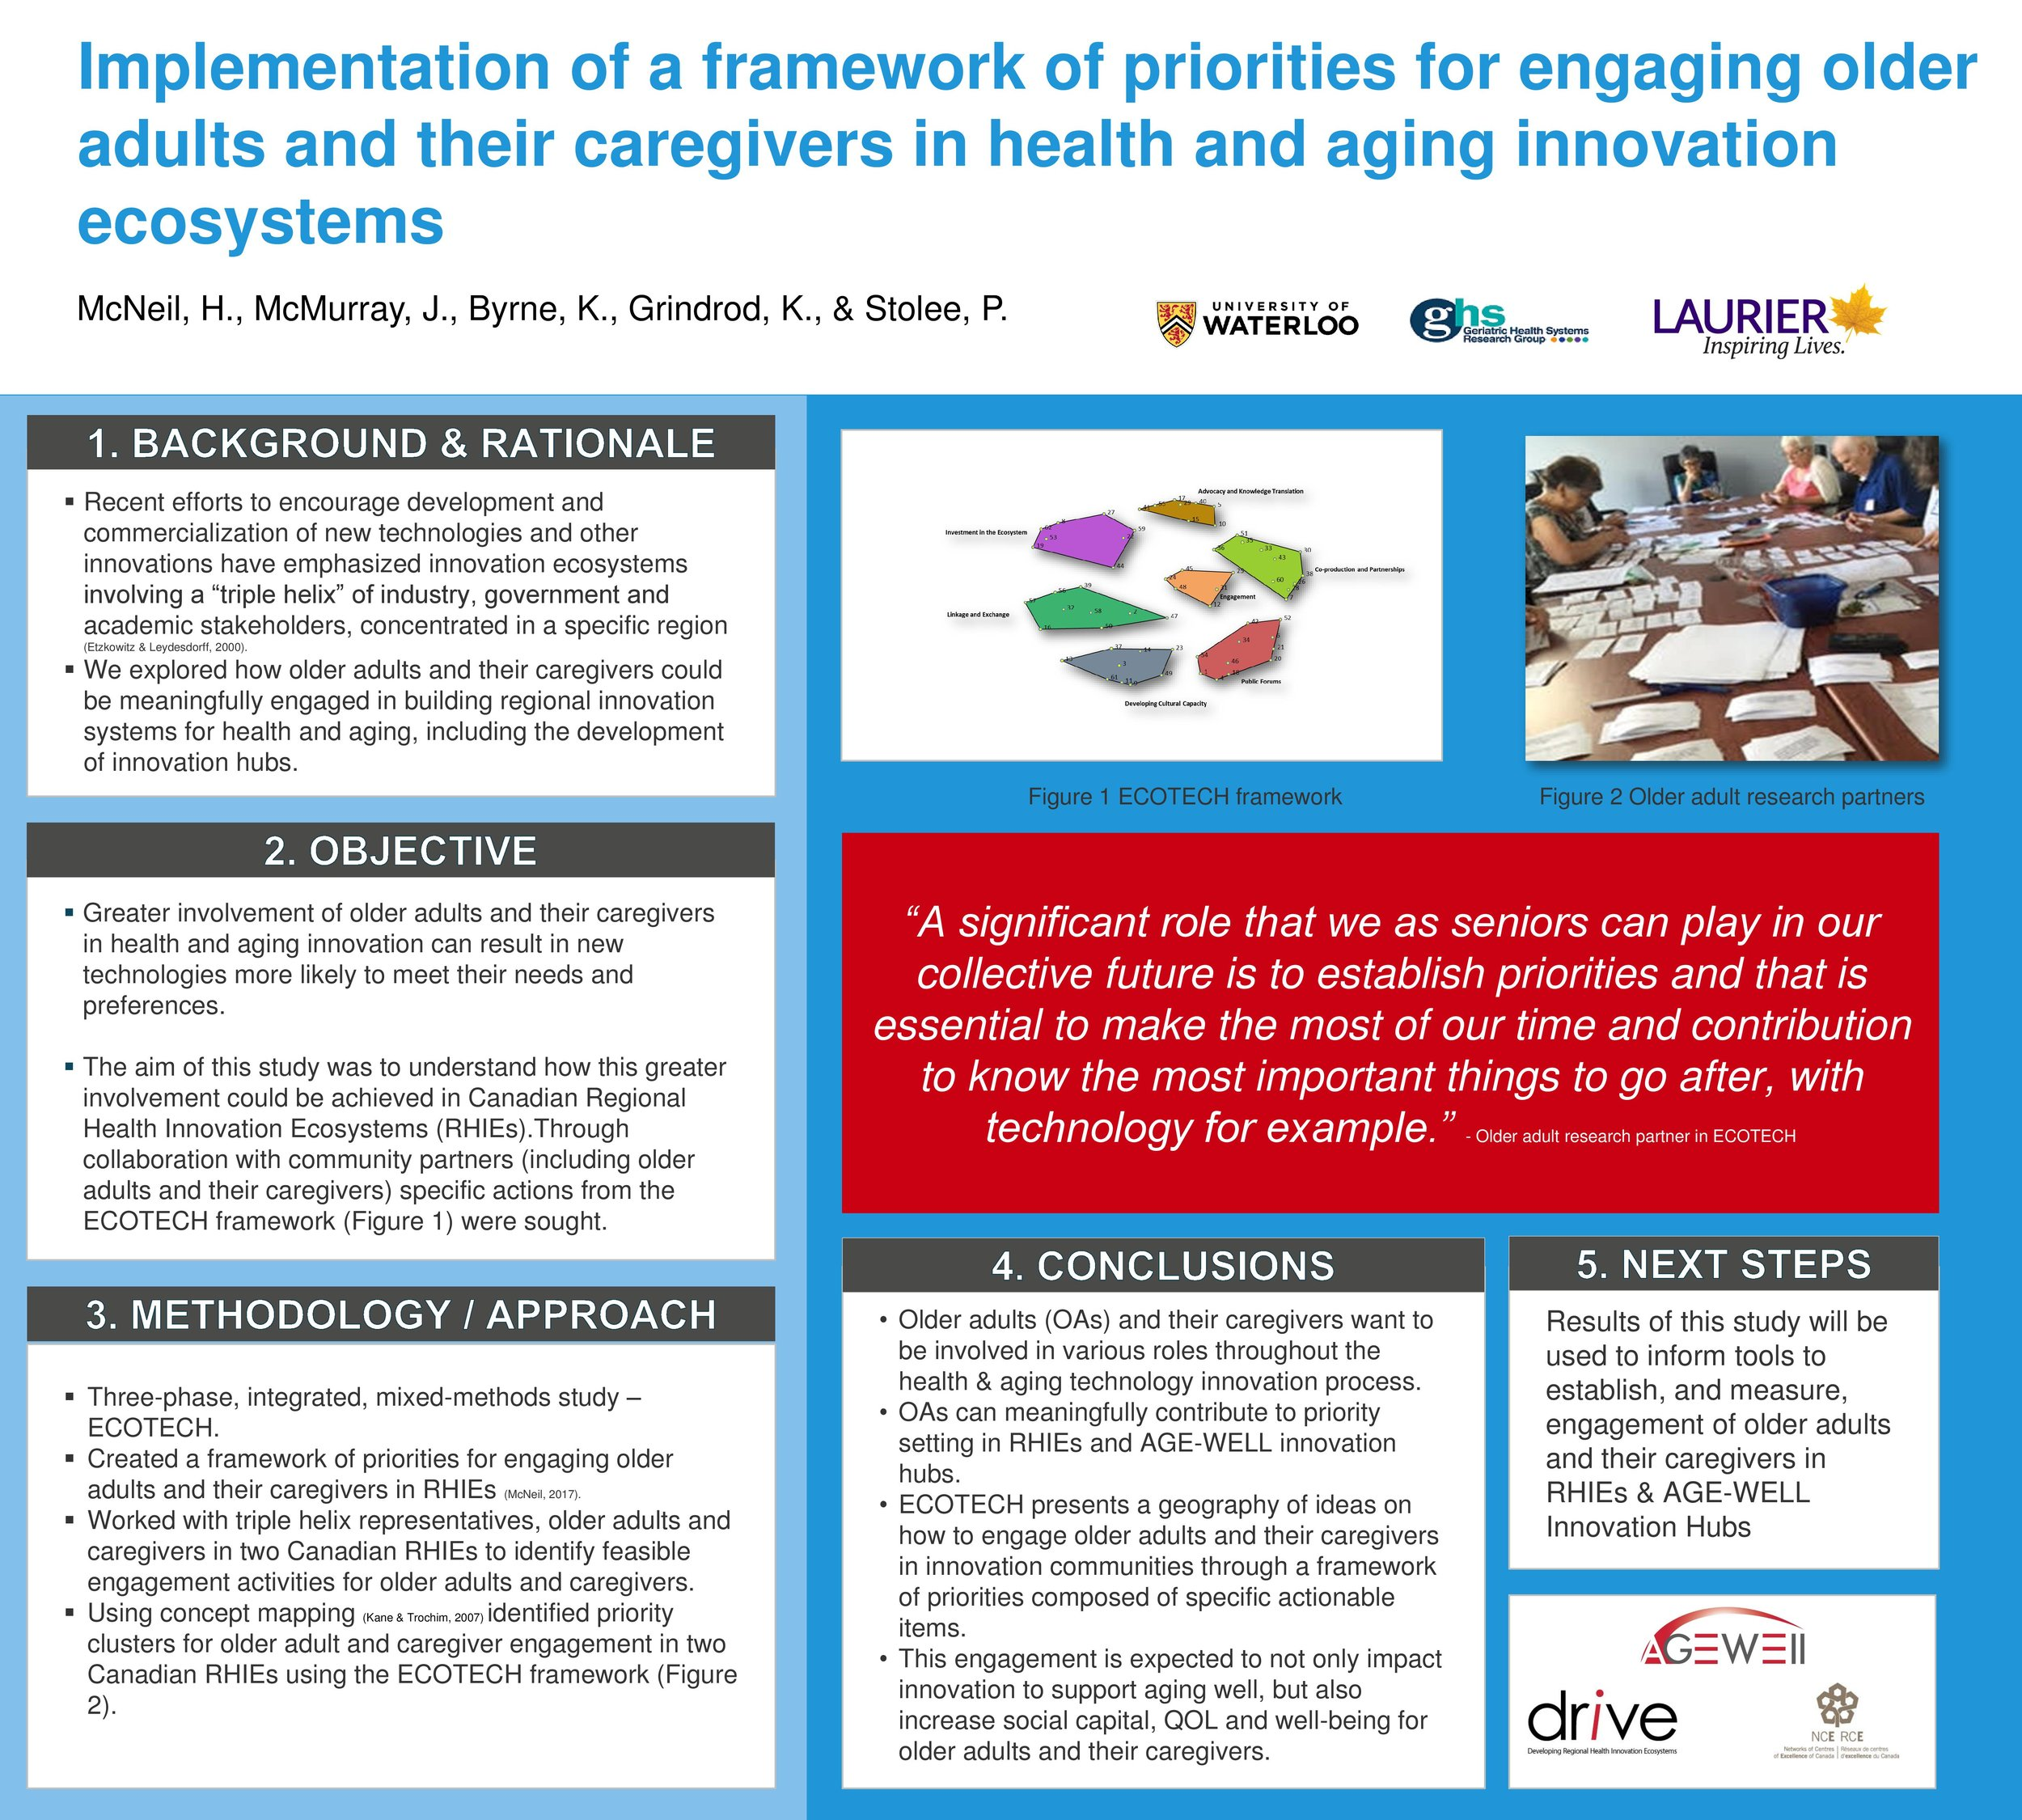 Engaging+Older+Adults+in+Ecosystem+Priorities,+CAG,+Oct+2017-page-001.jpg